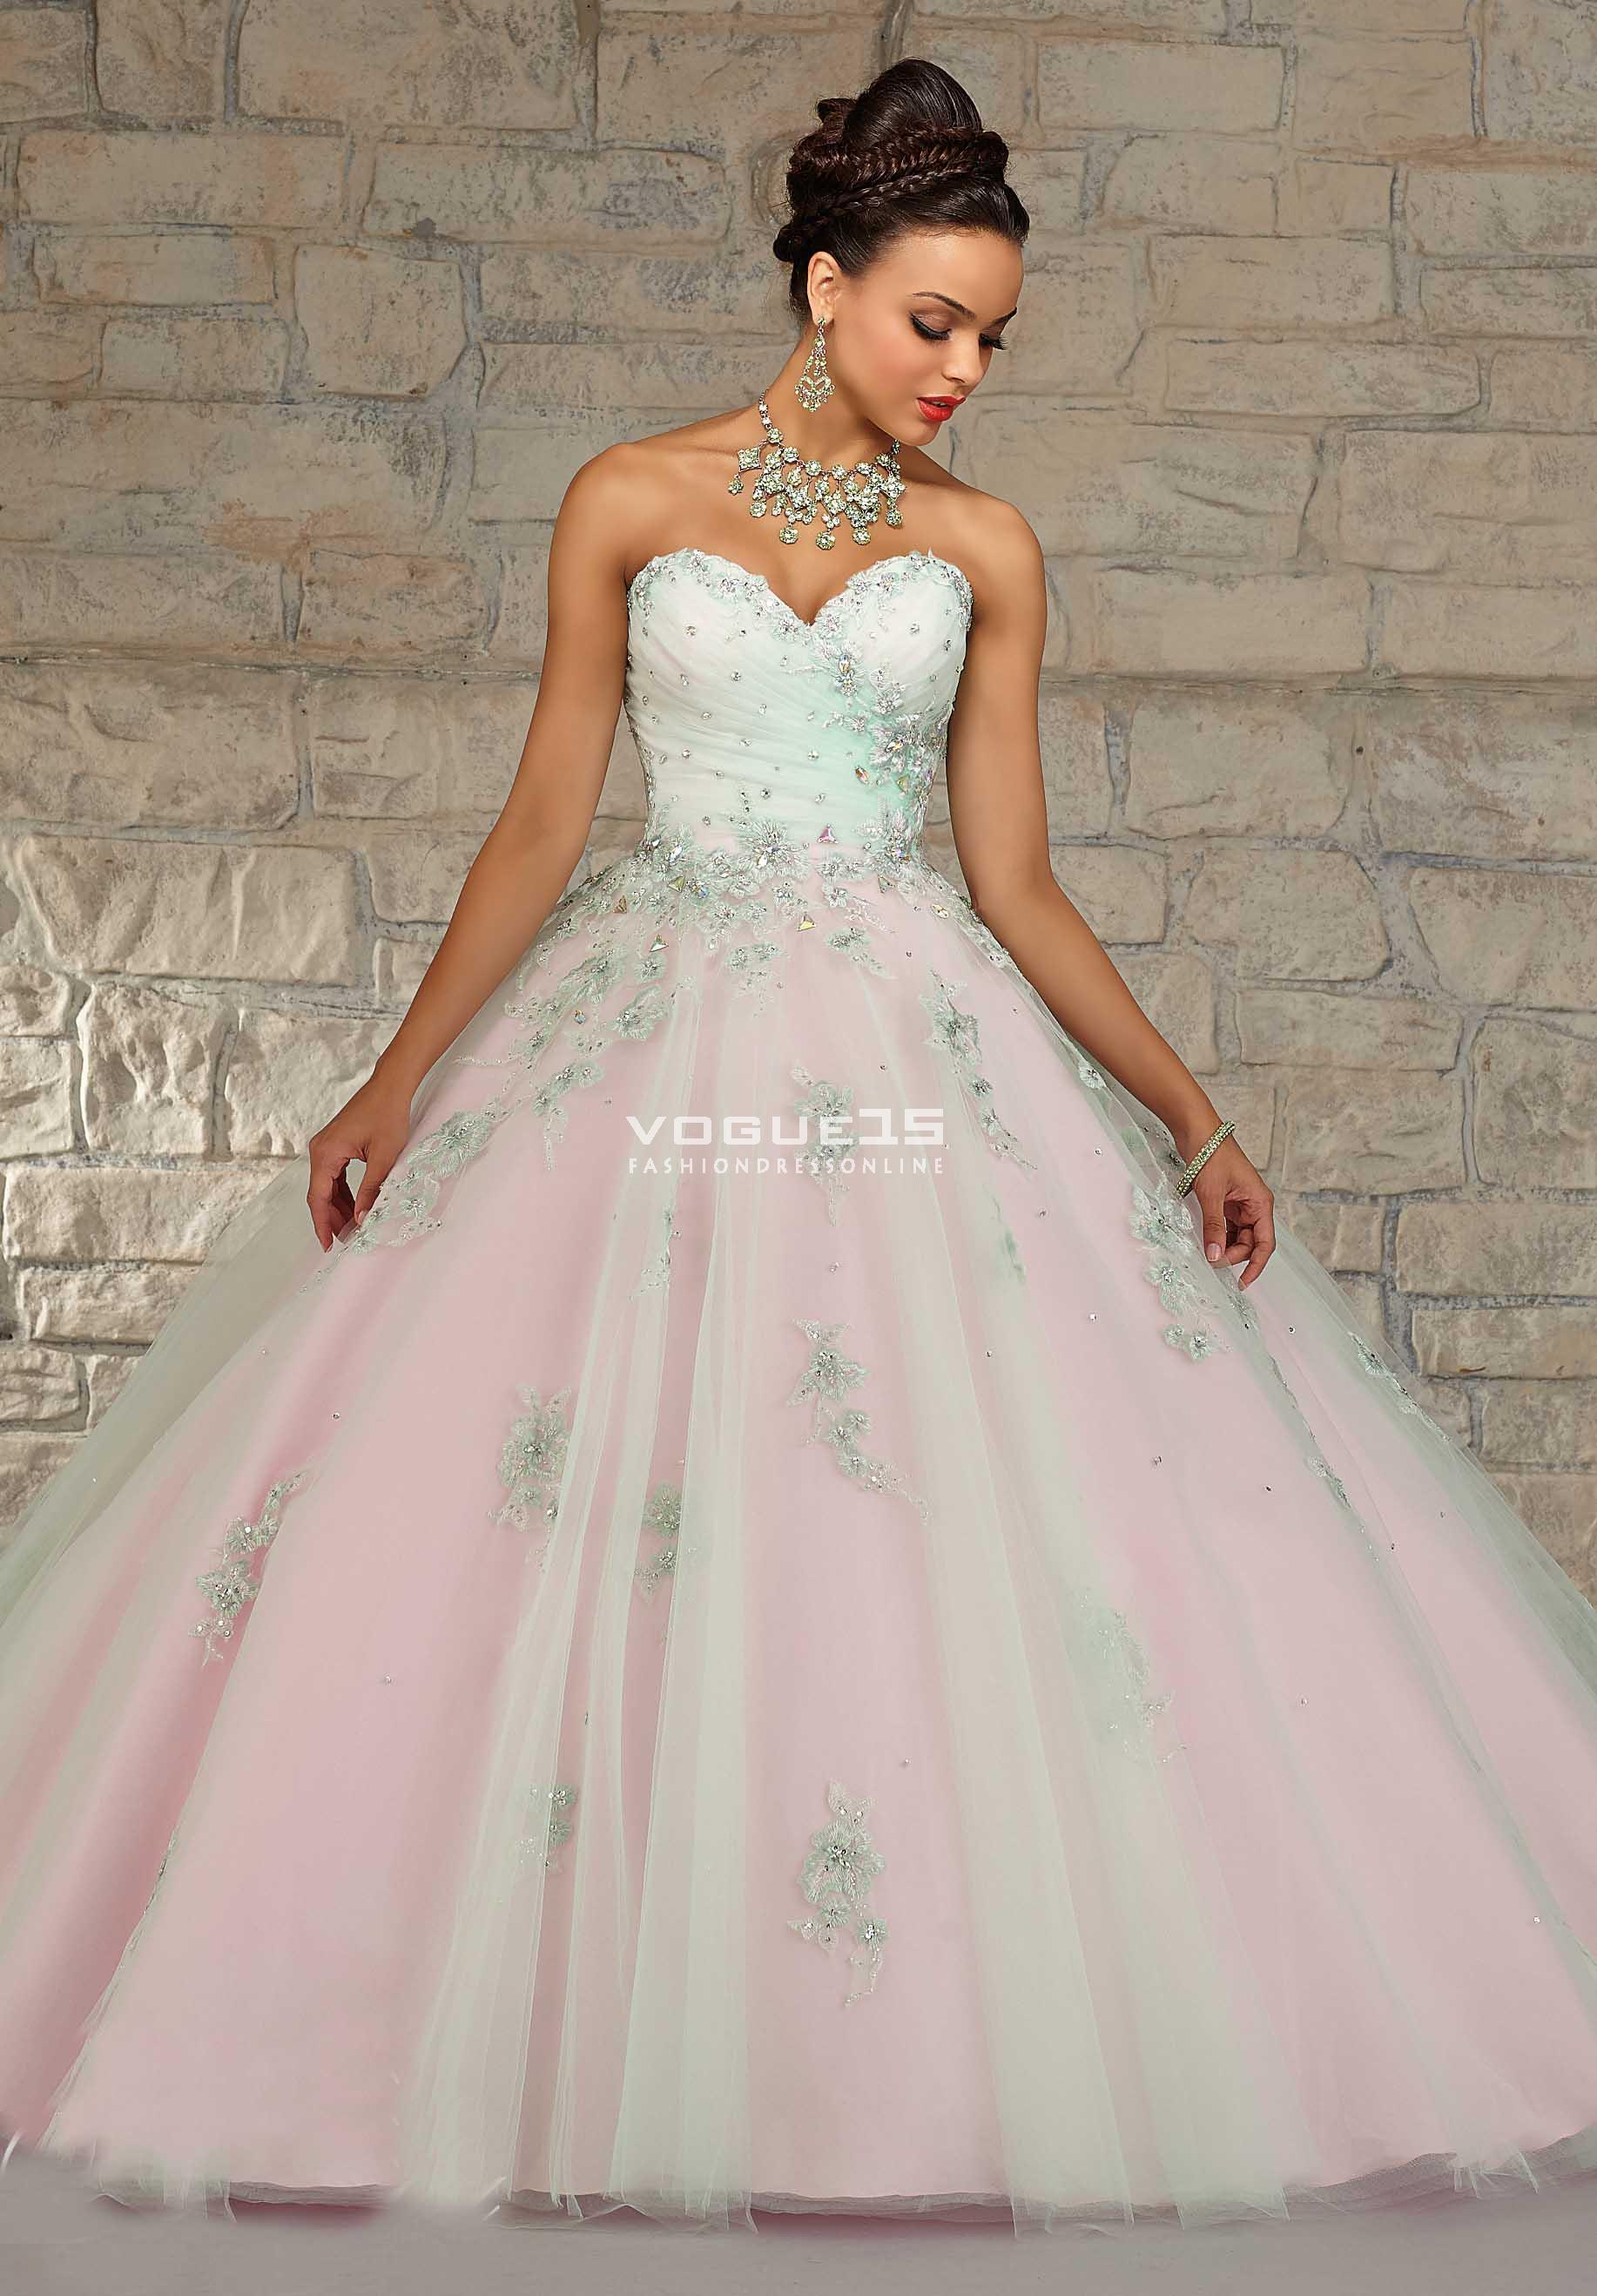 f56f9b4dd176 2016 New light pink overlaid with ivory tulle sweet 15 dress puffy  quinceanera ball gown with ...